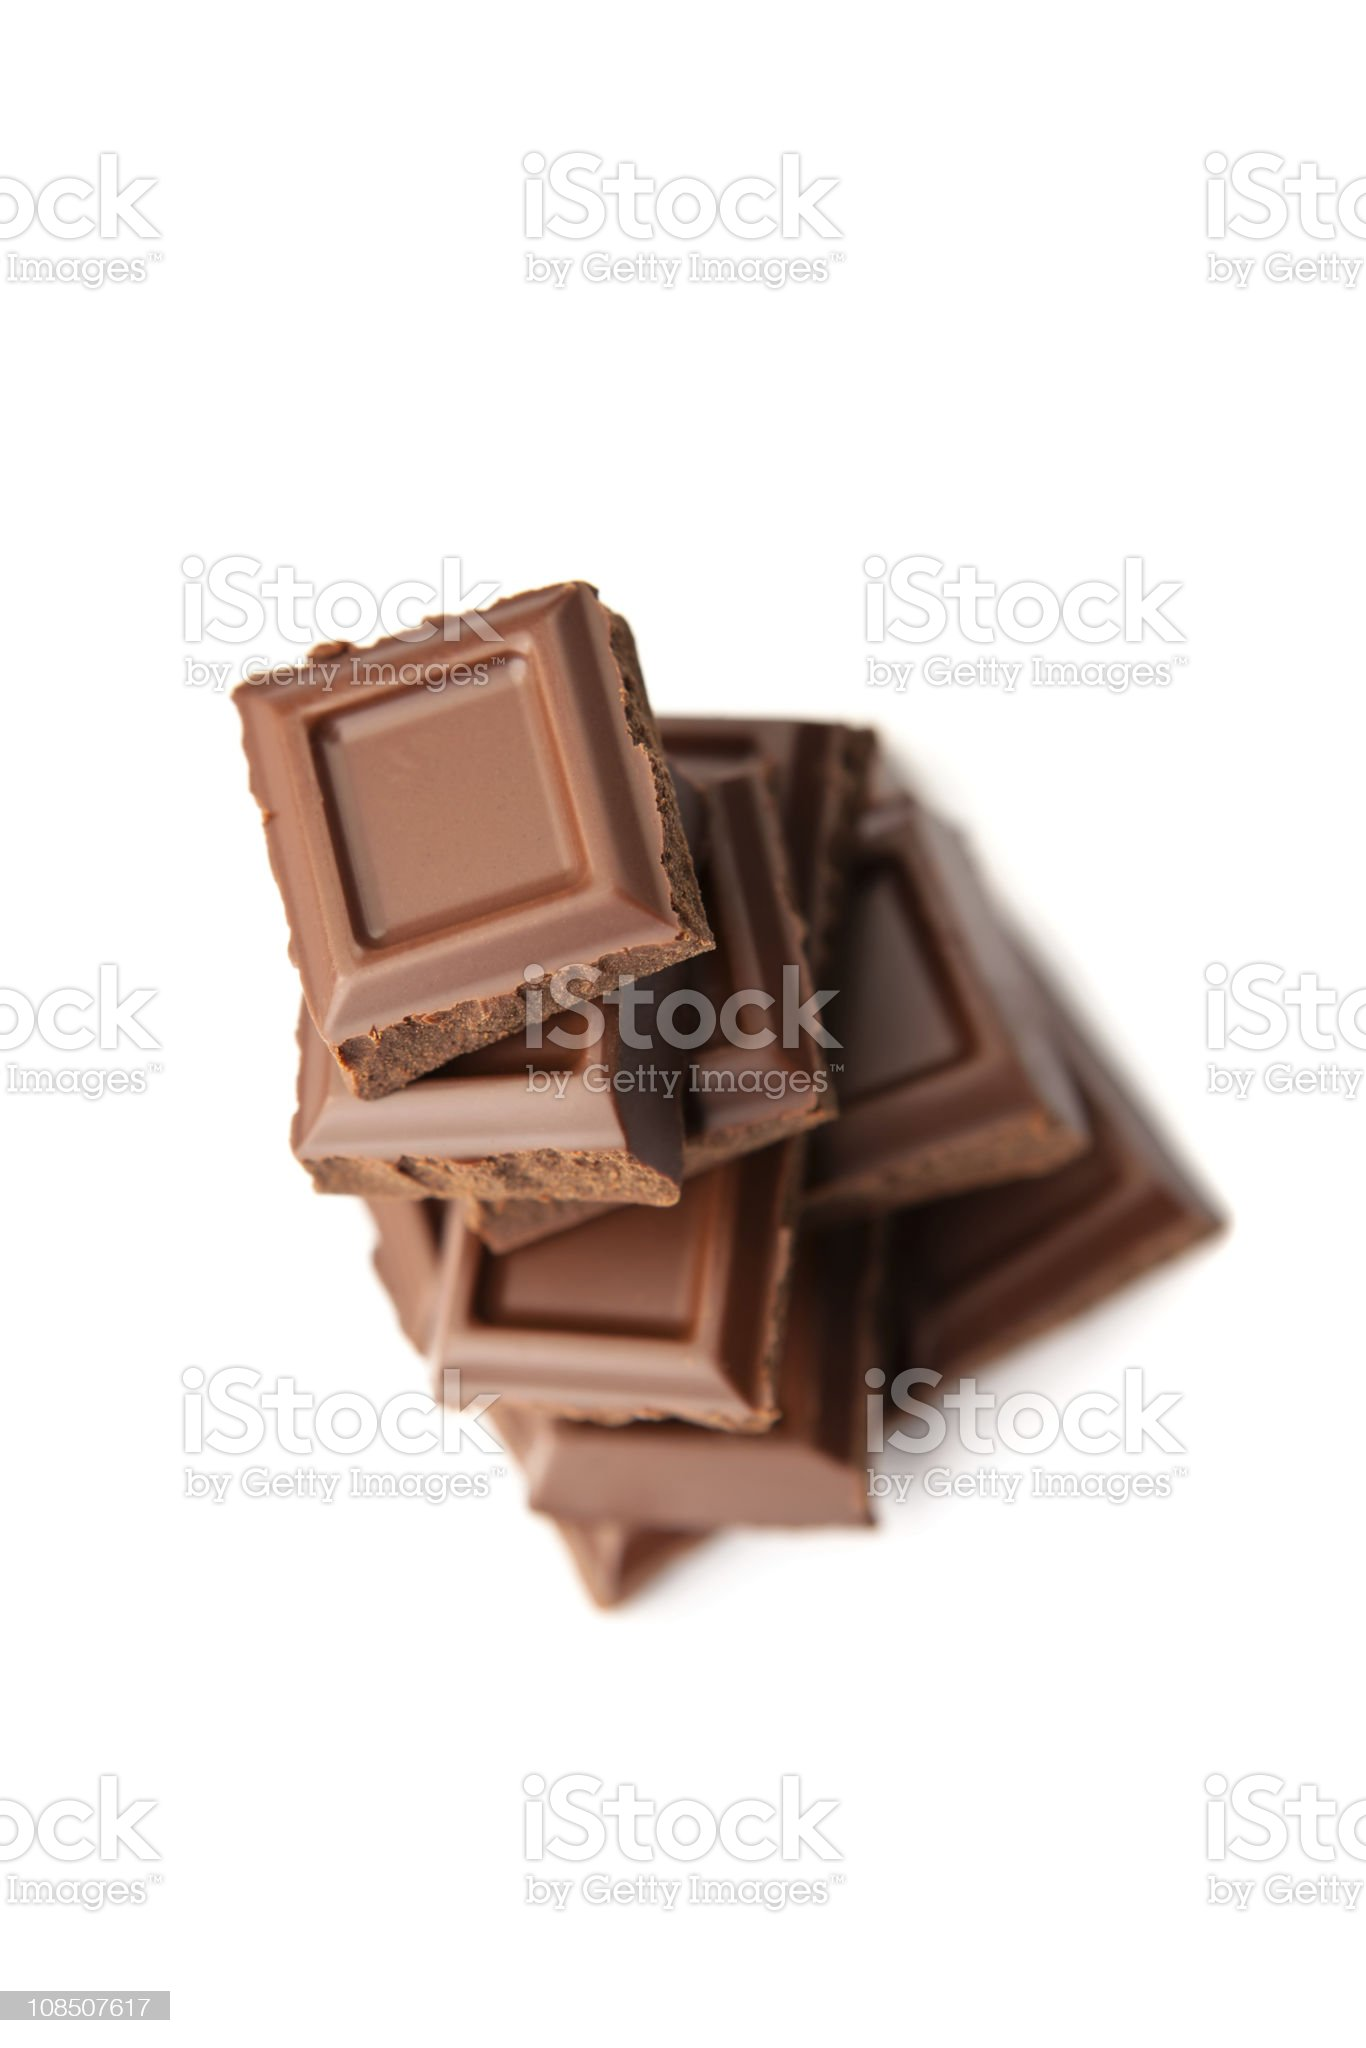 Chocolate stack royalty-free stock photo